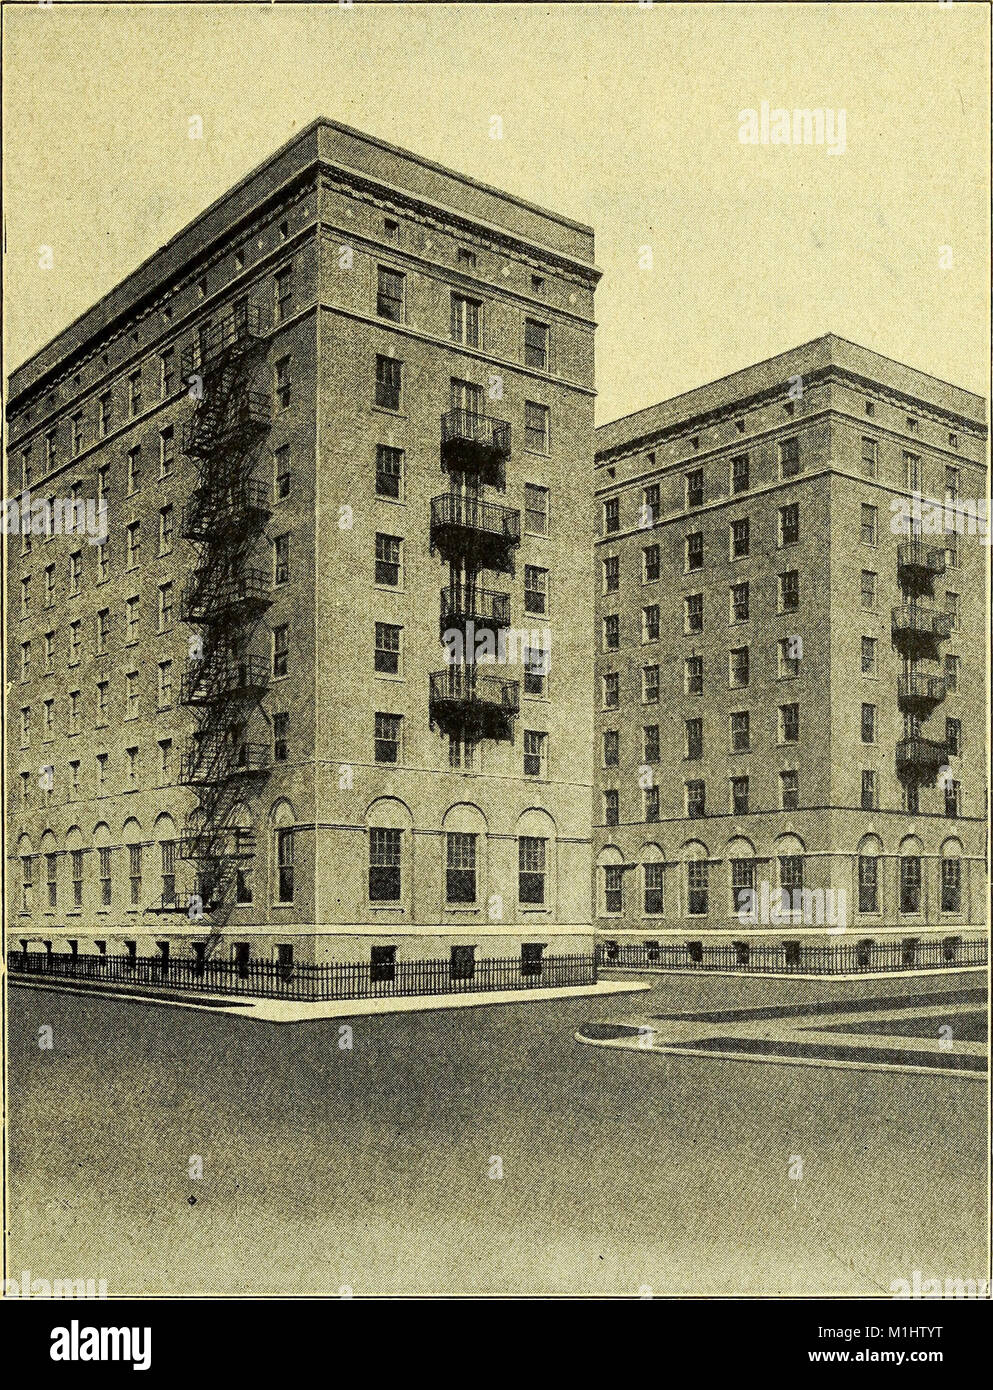 Annual report of the Presbyterian Hospital in the city of Chicago